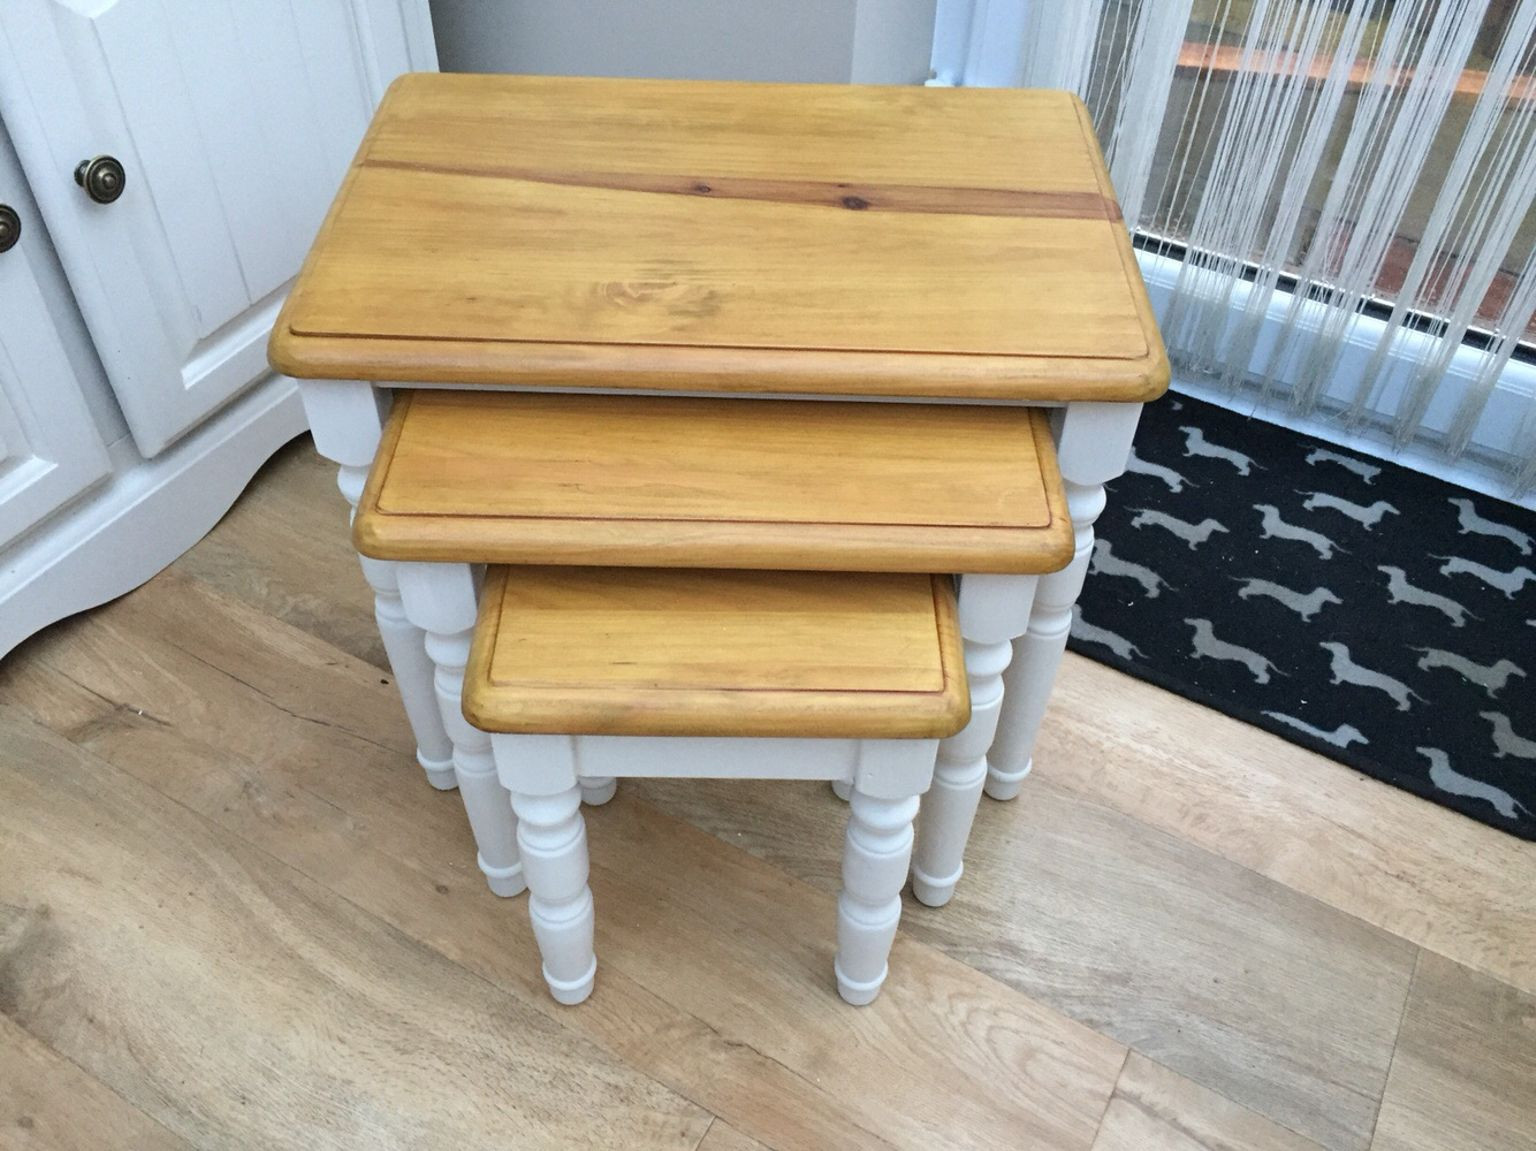 Hardwood Floor Refinishing Whitby Of Https En Shpock Com I Wazdw9rtdqkxi0xx 2017 01 10t151704 In Nest Of Side Coffee Tables